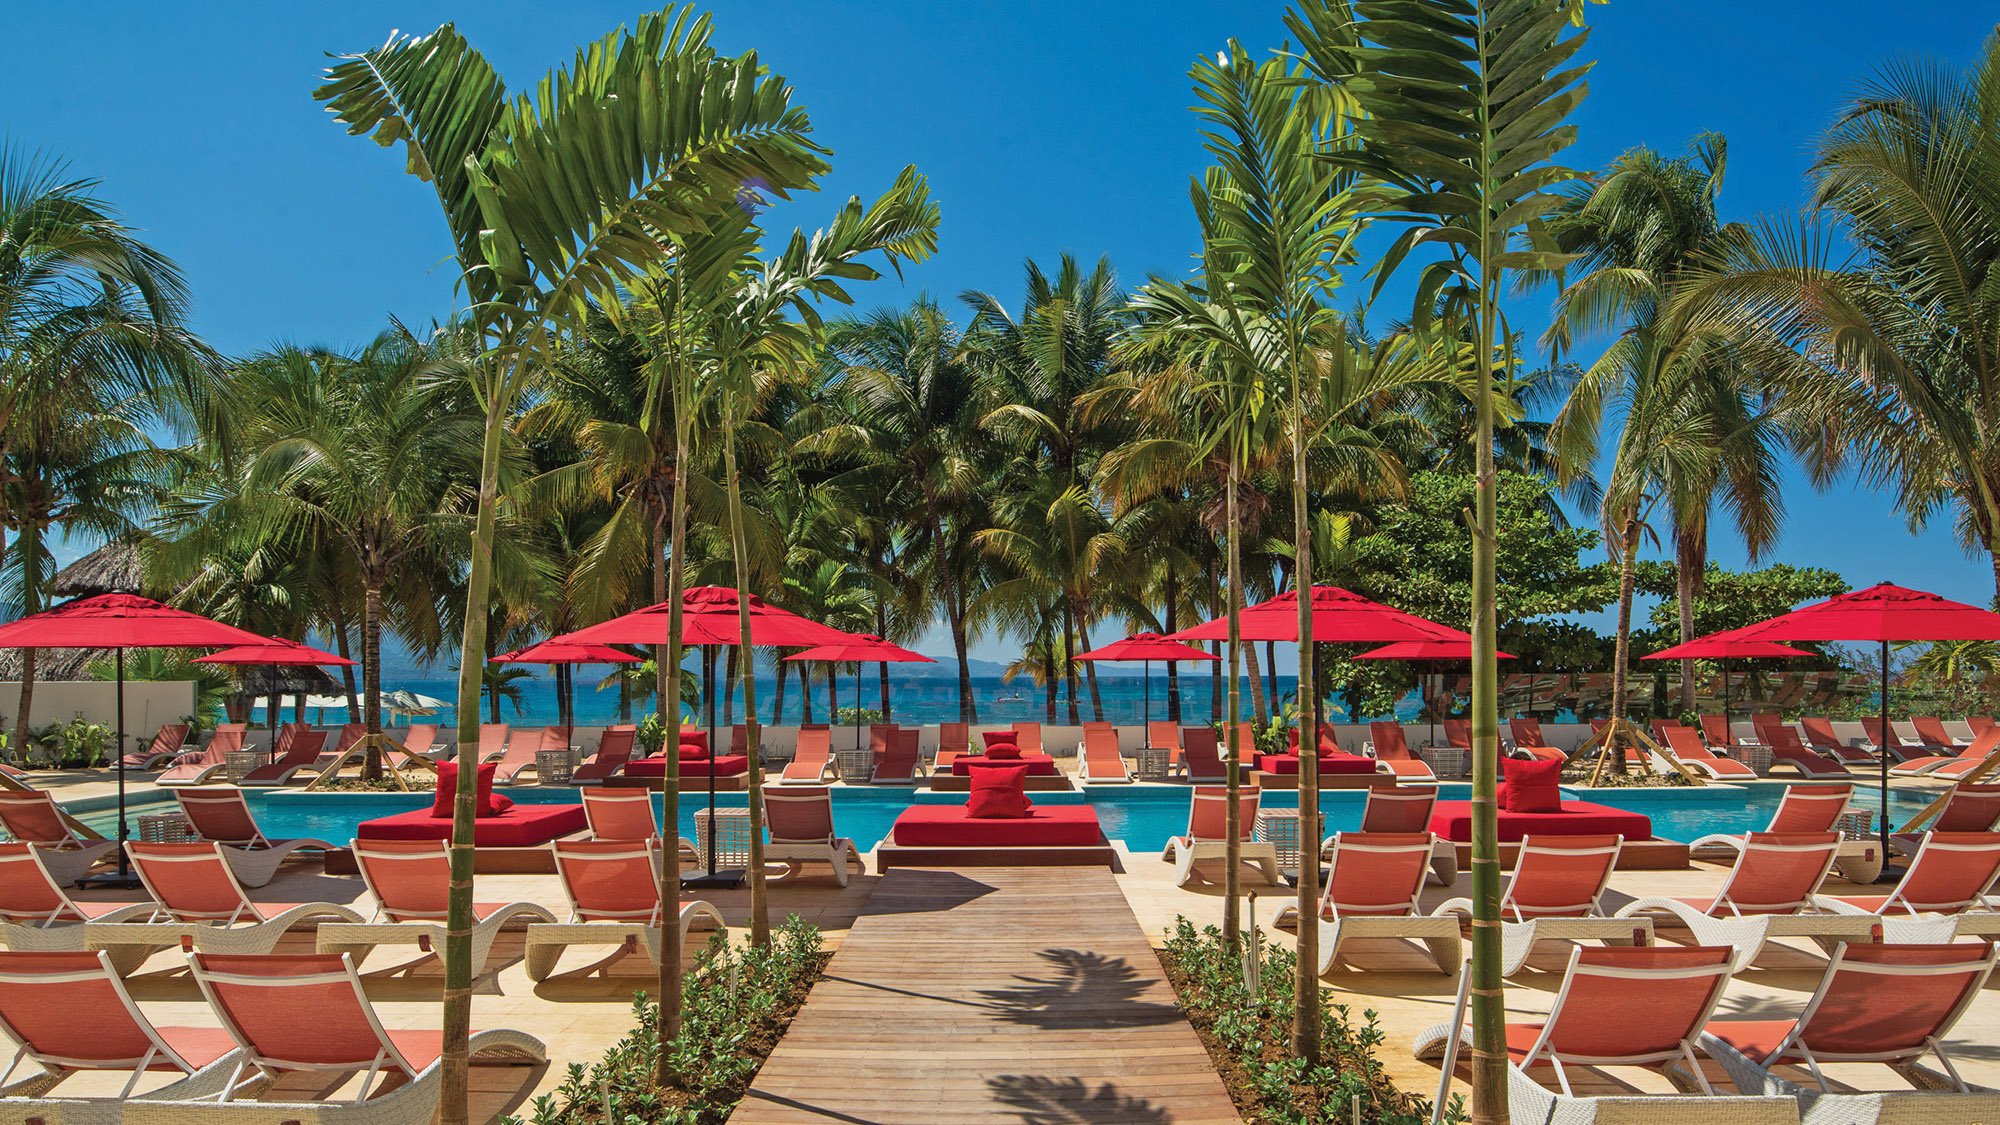 S Hotel Jamaica Aims For South Beach Vibe In Montego Bay Travel Weekly